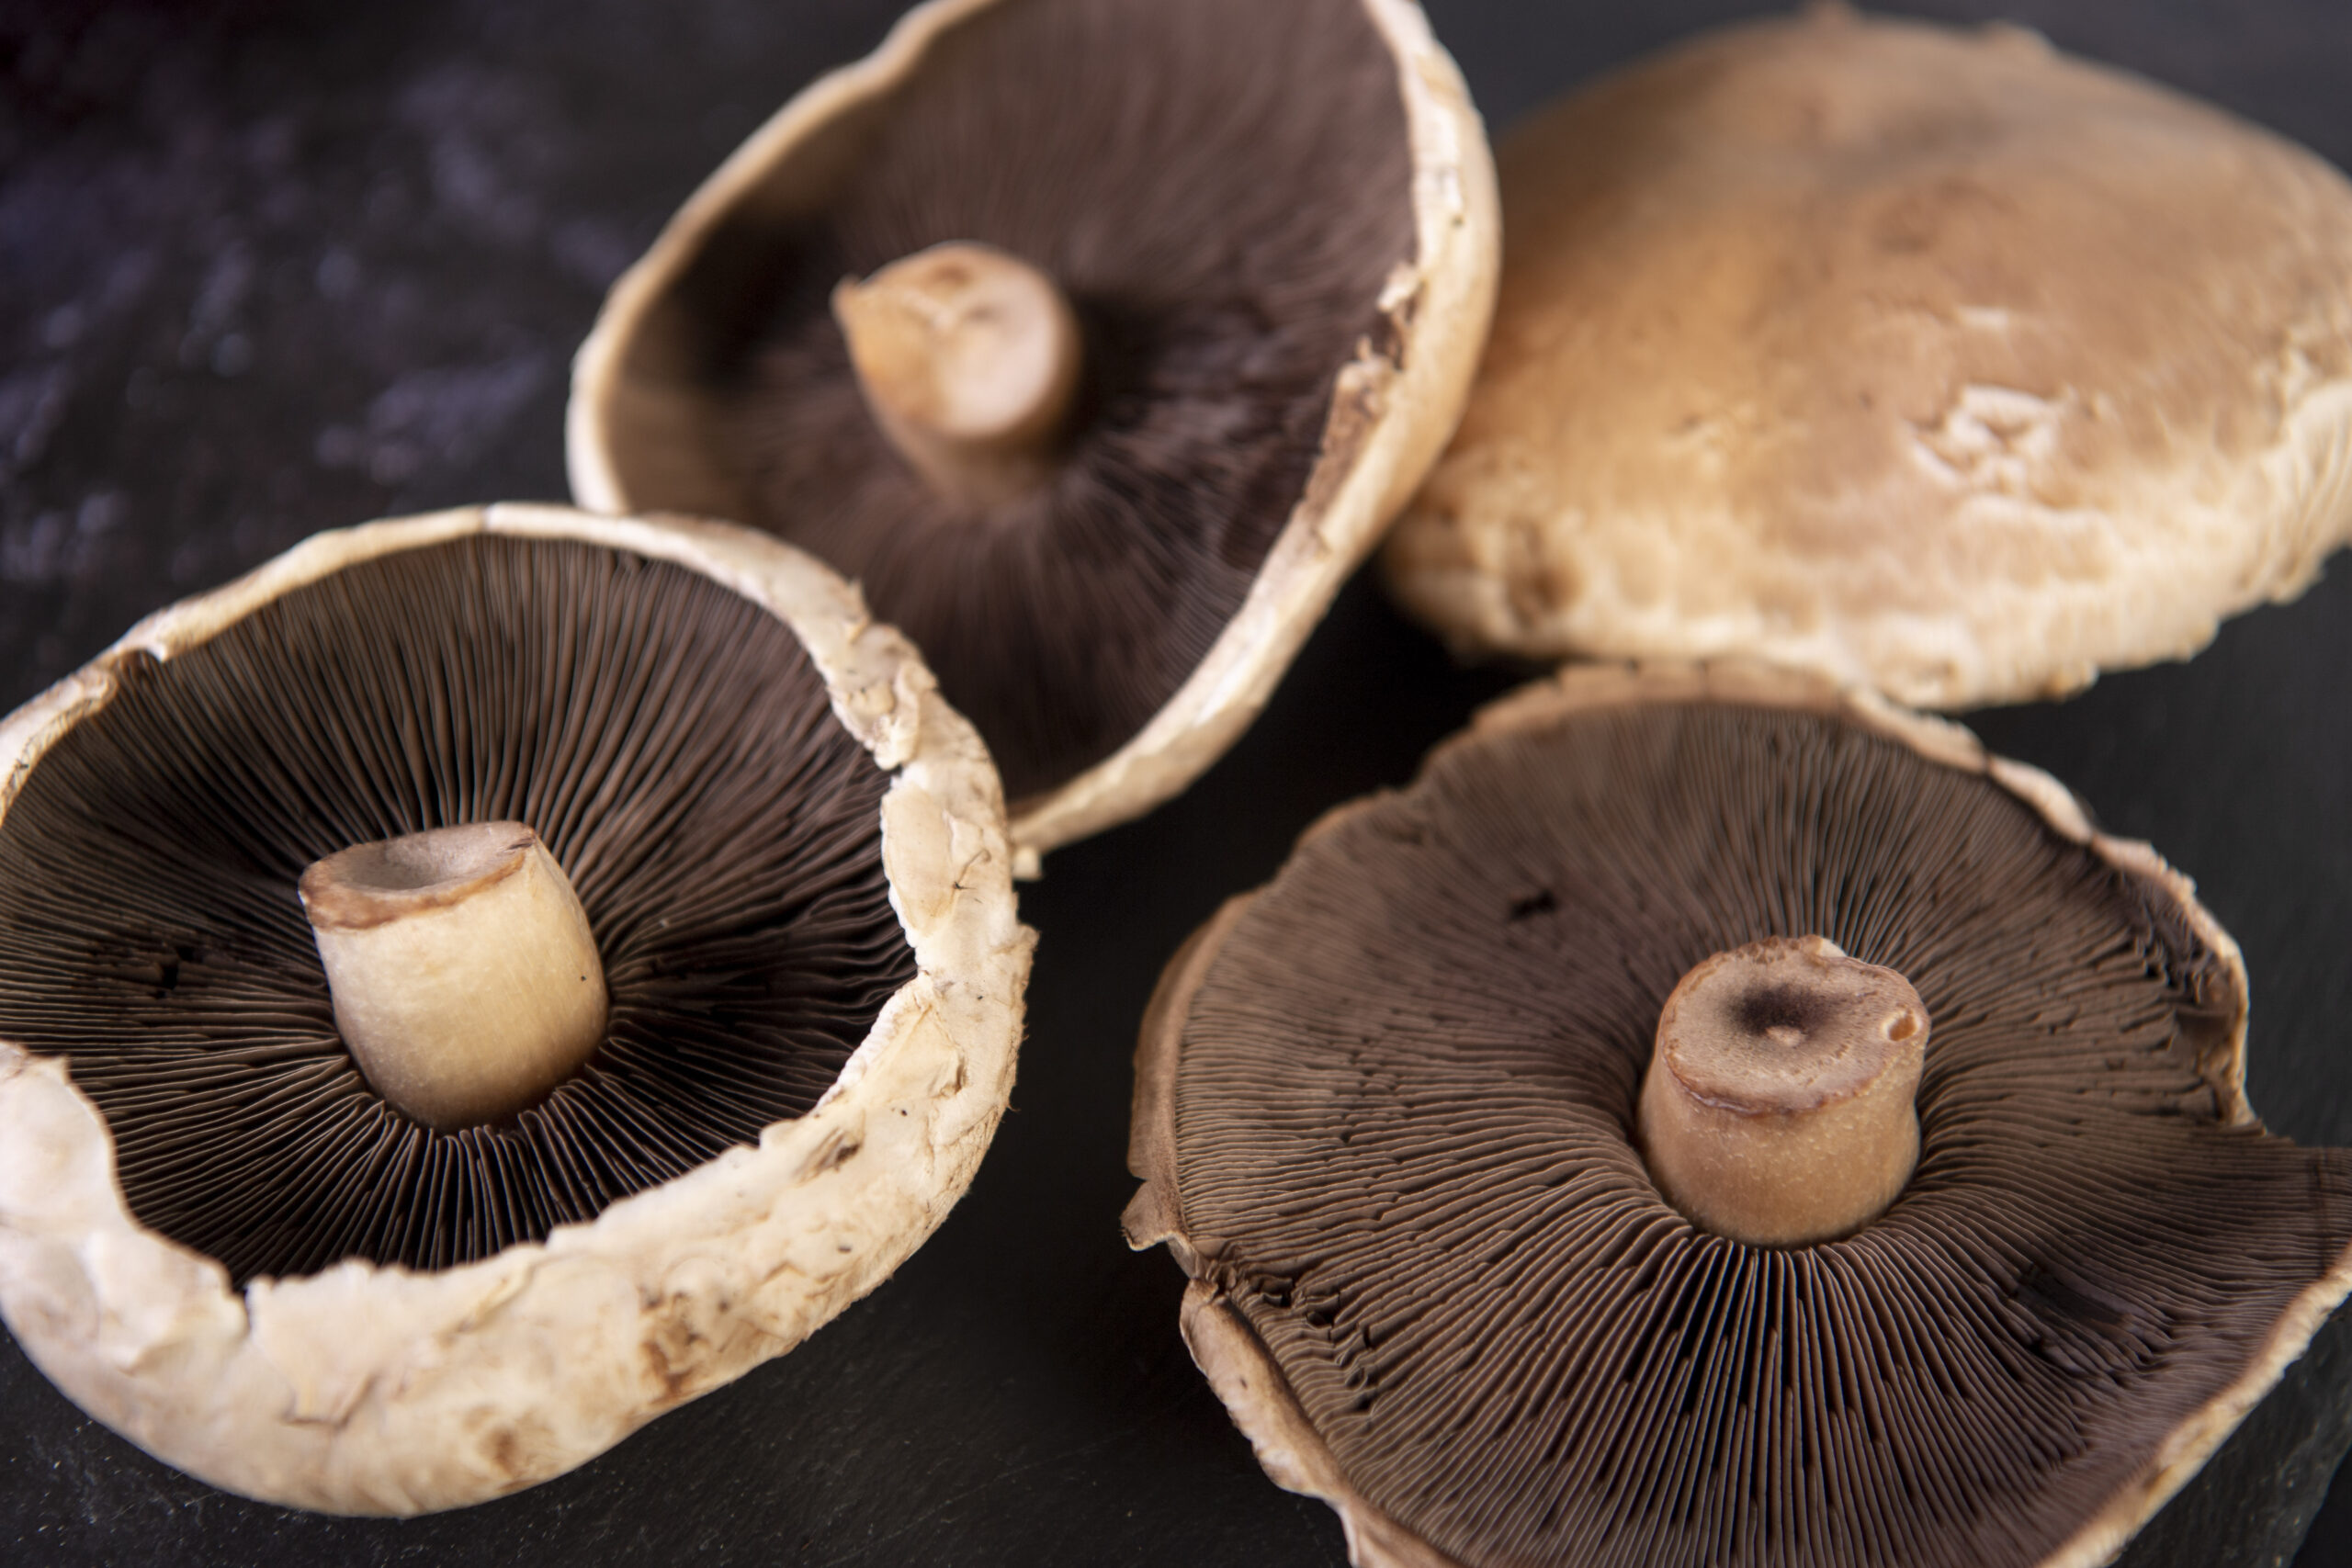 Portobello Mushrooms (250g) - 03